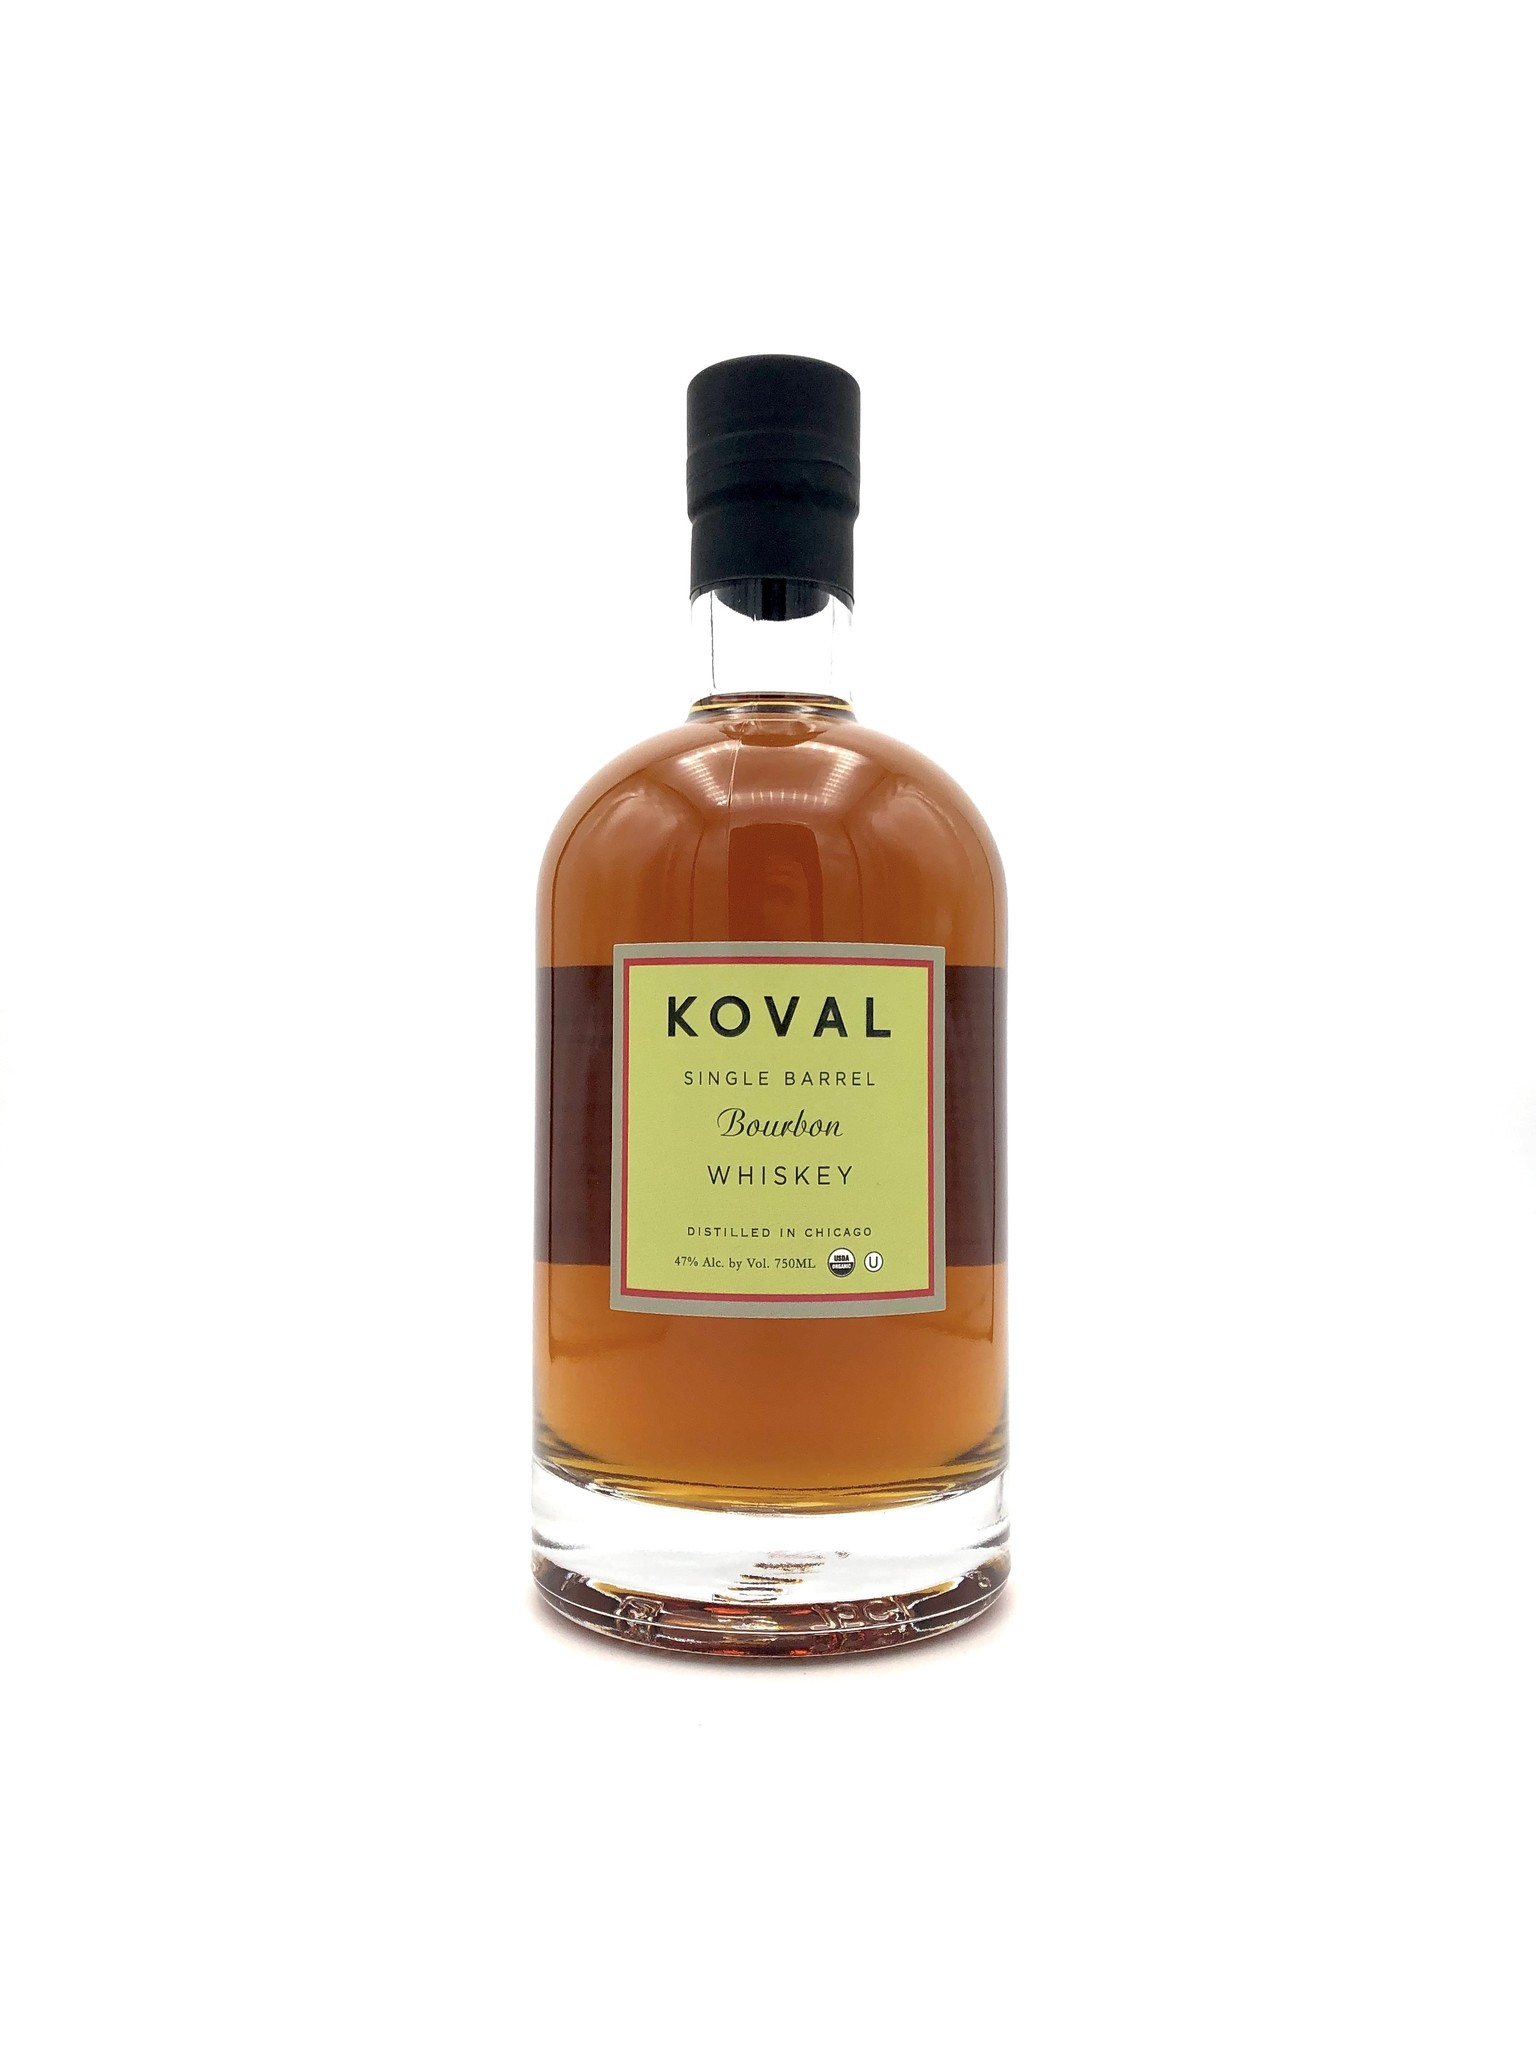 Single Barrel Bourbon Koval